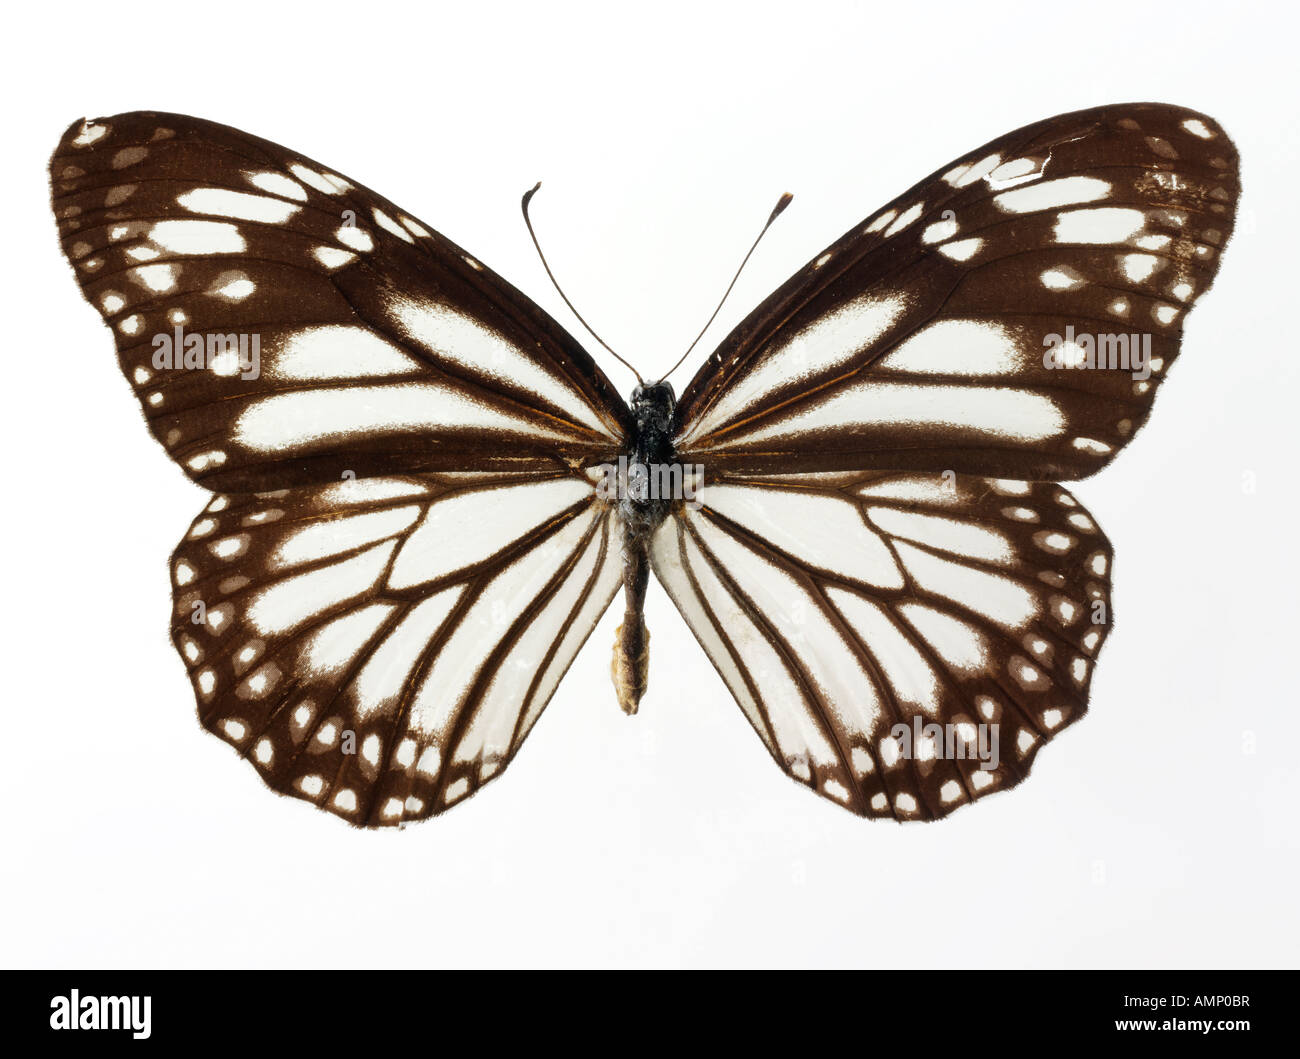 top shot plan view of a Nymphalidae butterfly, opened winged, against a white background in a studio - Stock Image